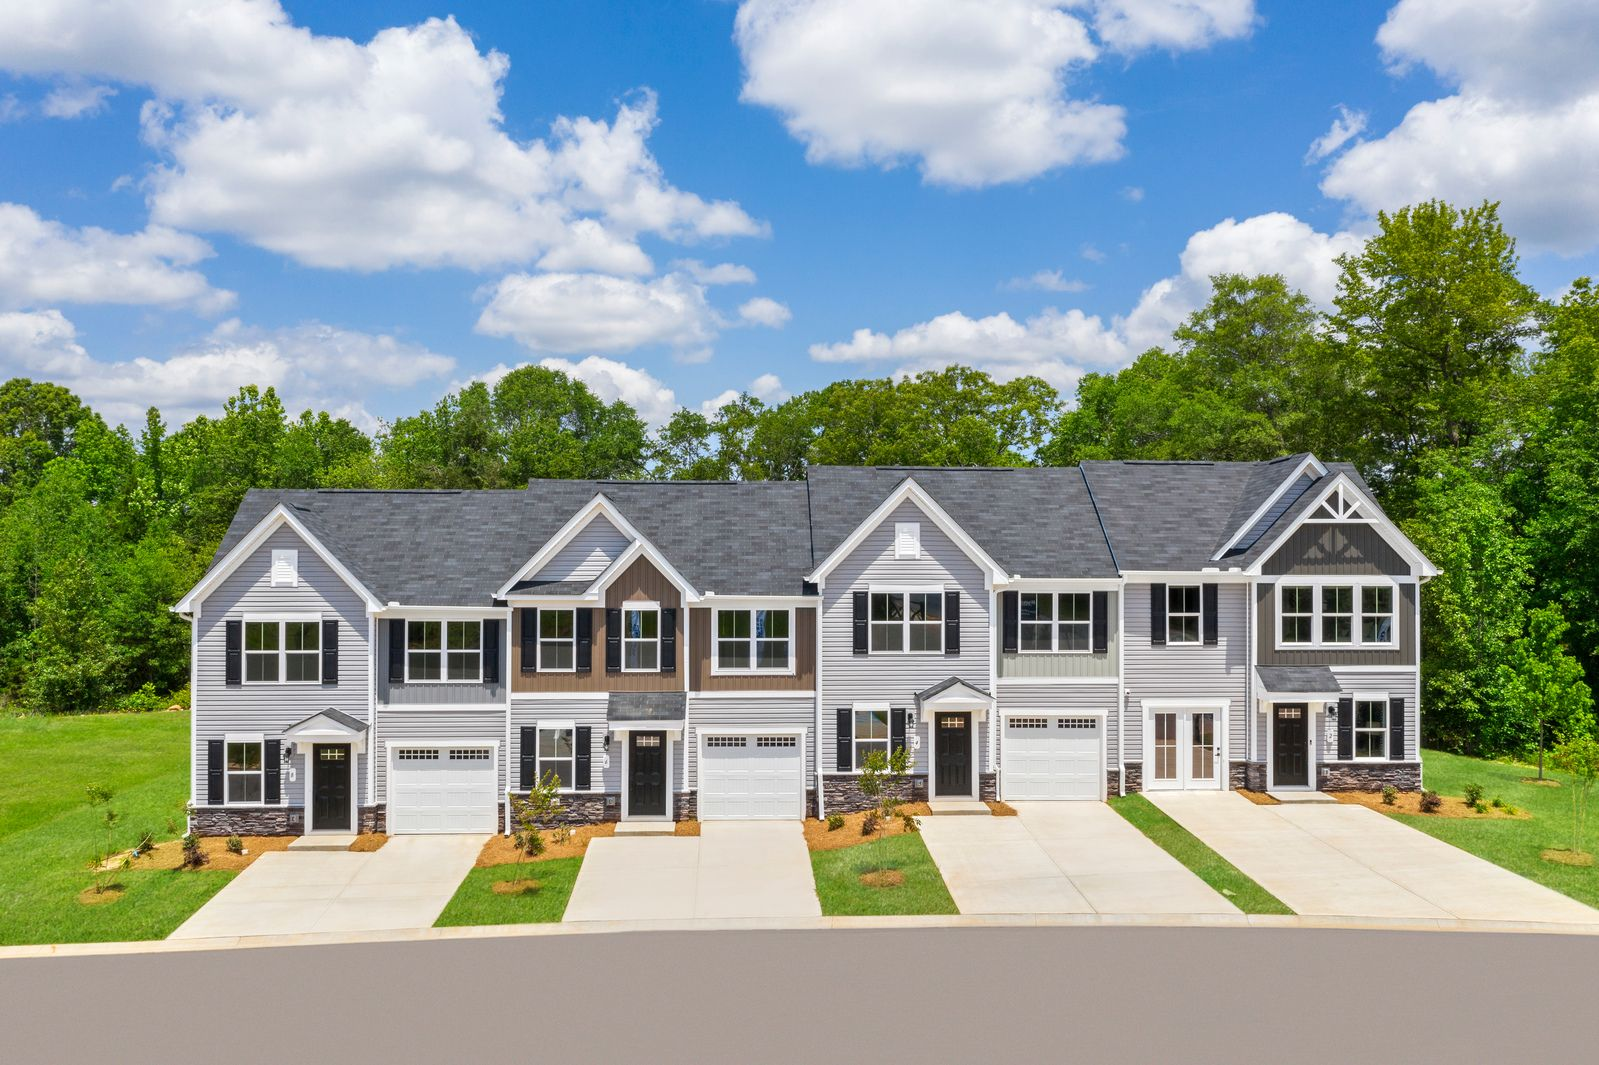 LAST CHANCE to own in Fountain Inn's fastest-selling community:An ideal location with small town charmand convenient features makes Fountain Inn Villas a place you'll want to live!Schedule a visit to Fountain Inn Villas!